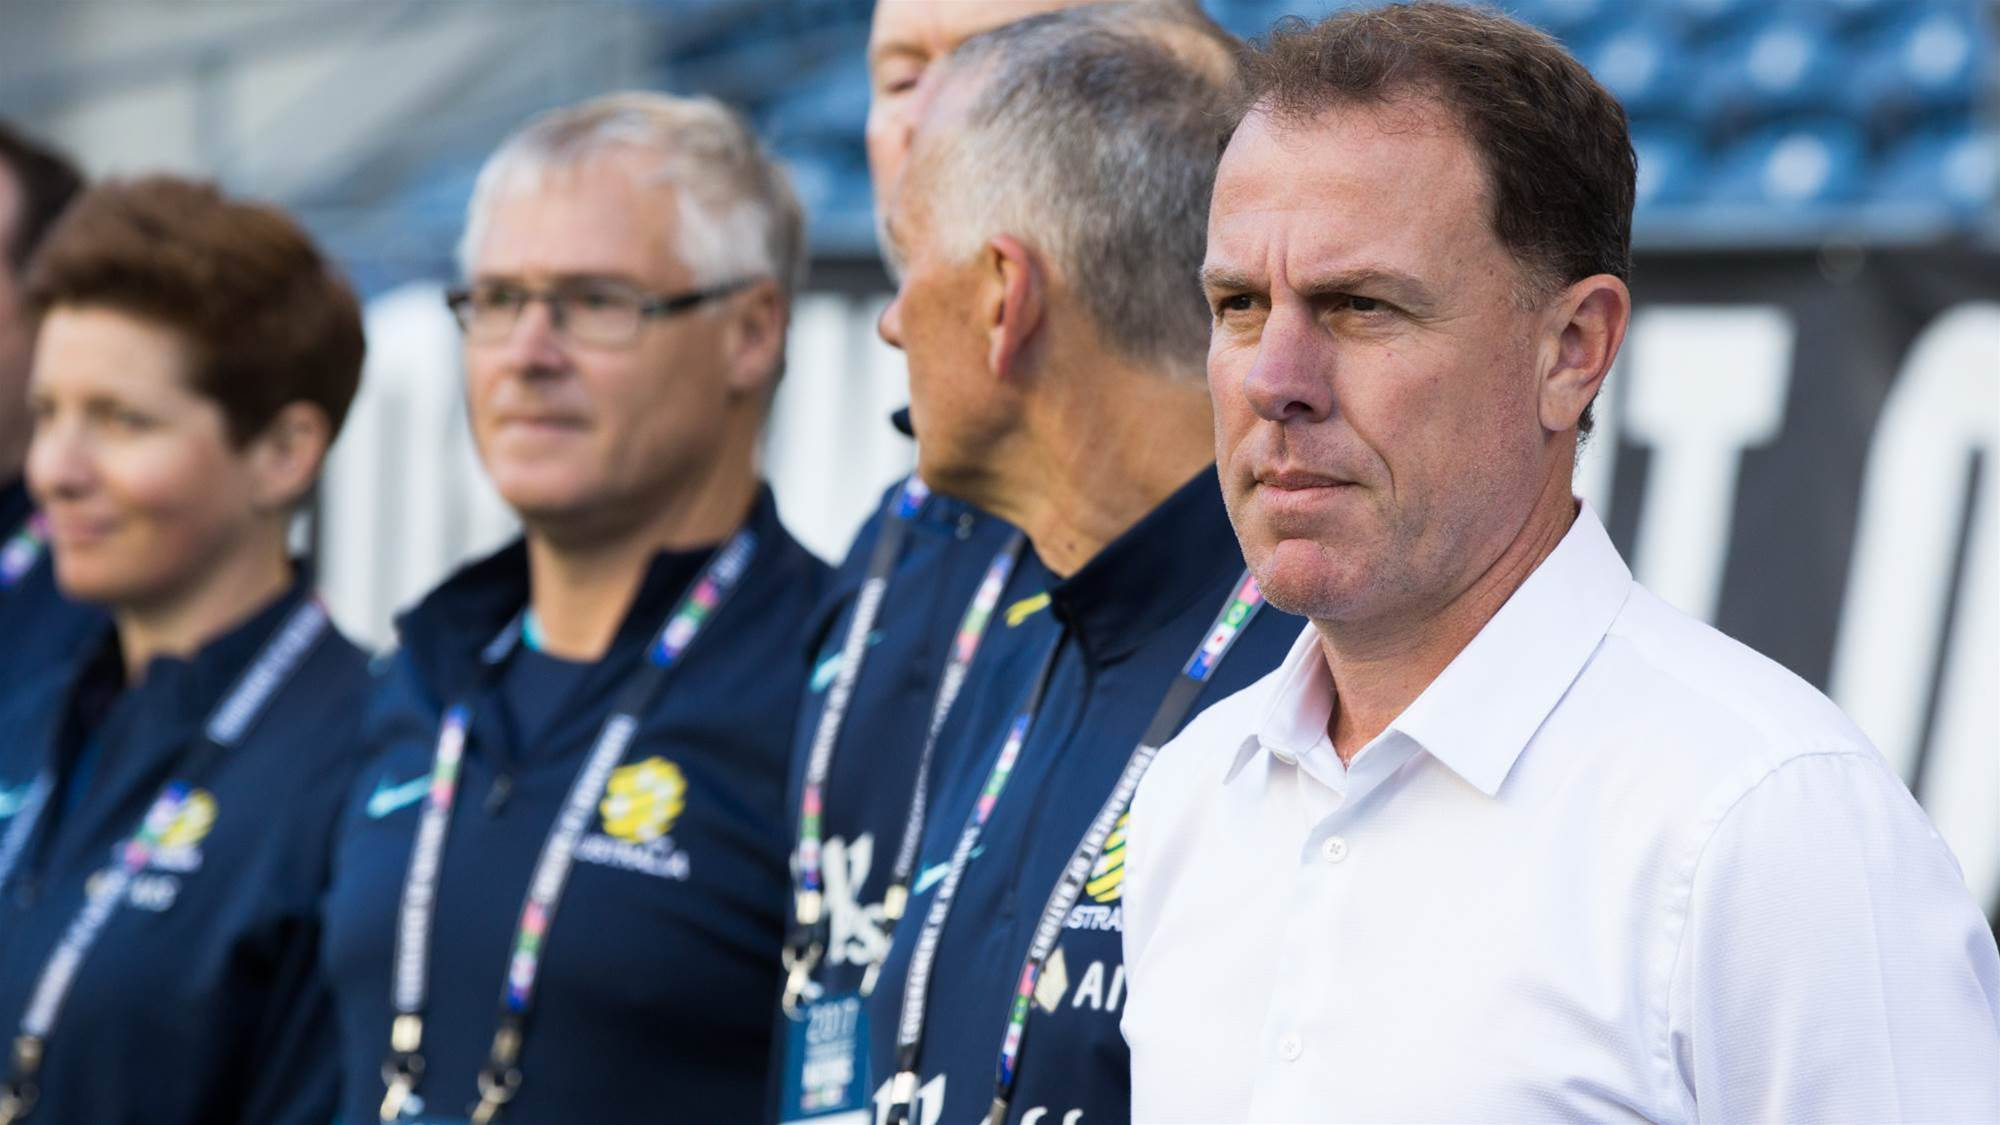 Stajcic the first national coach to look at remote Indigenous footballers